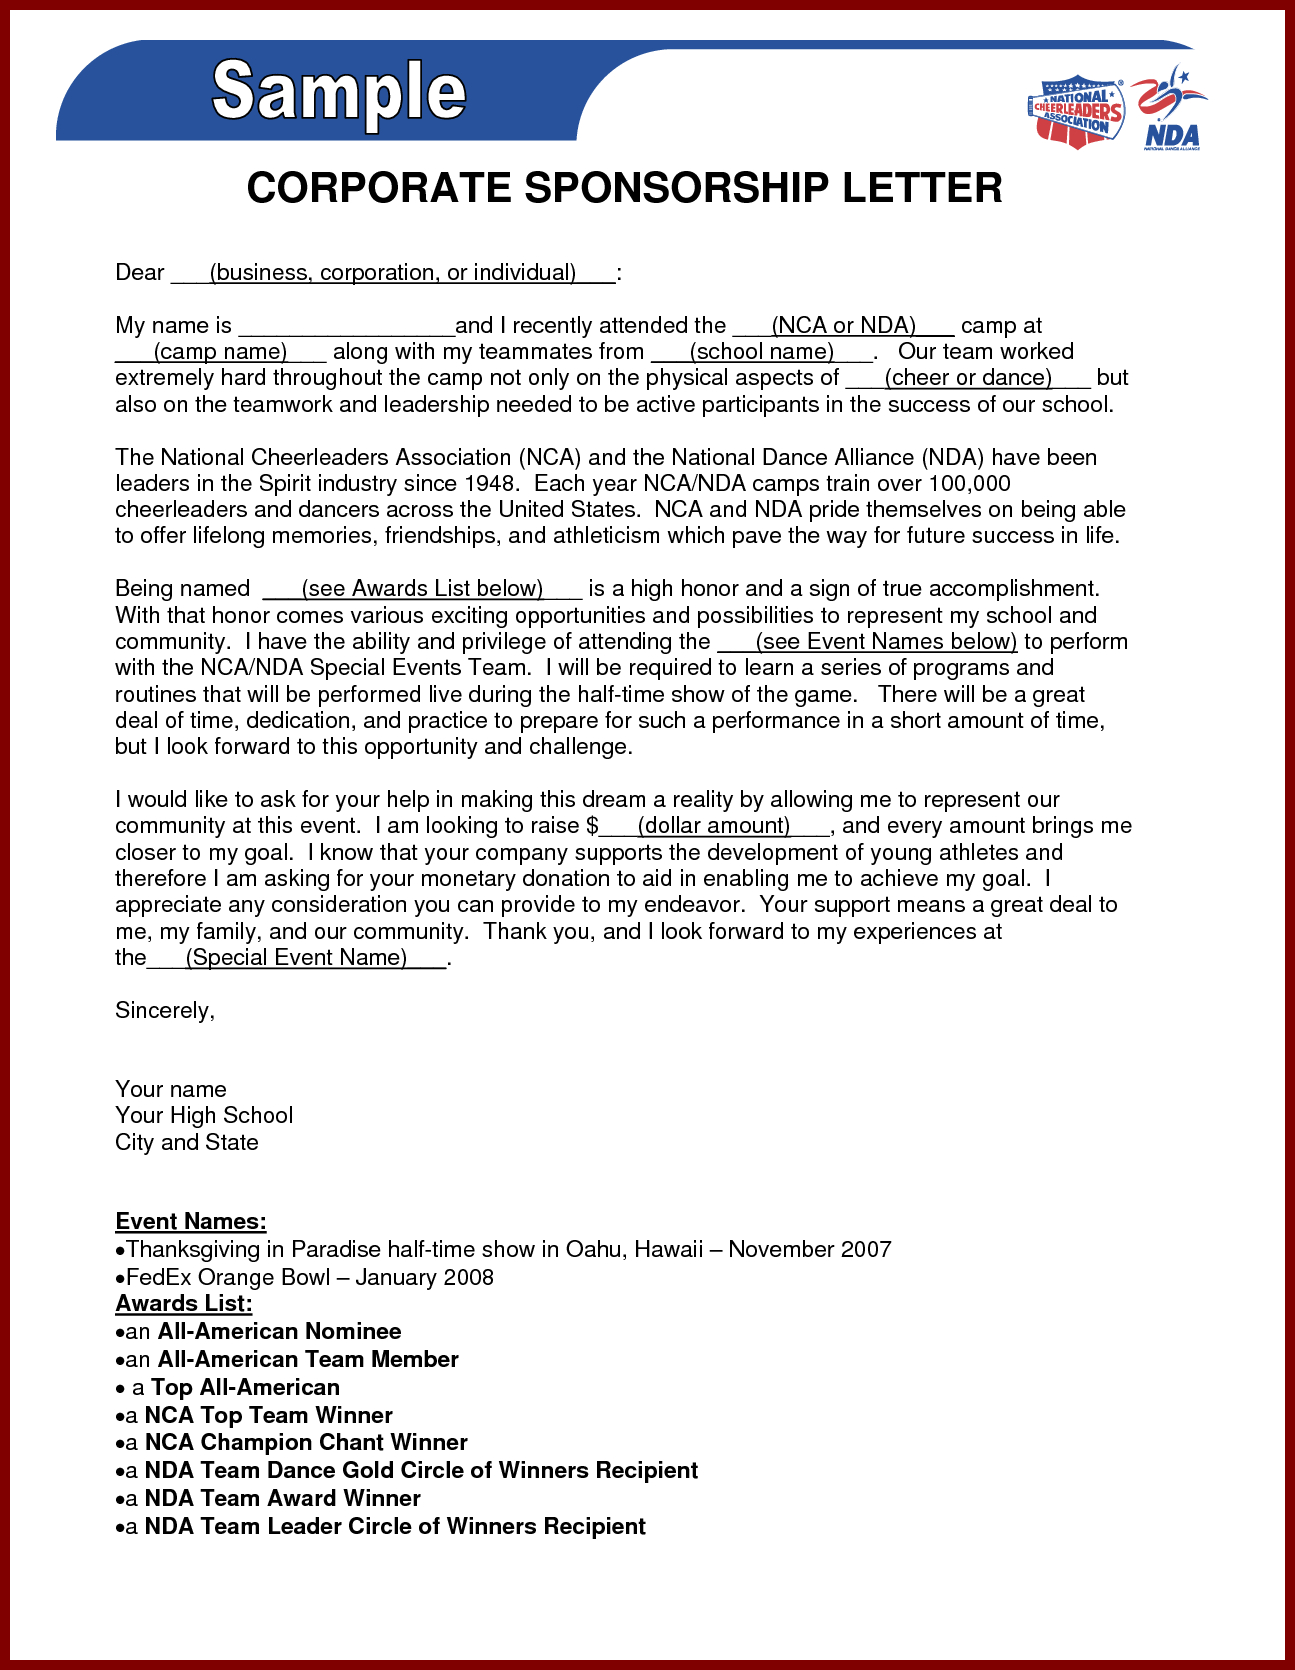 Sponsorship proposal letter template examples letter templates sponsorship proposal letter template business sponsorship letter template gallery business cards ideas flashek Image collections